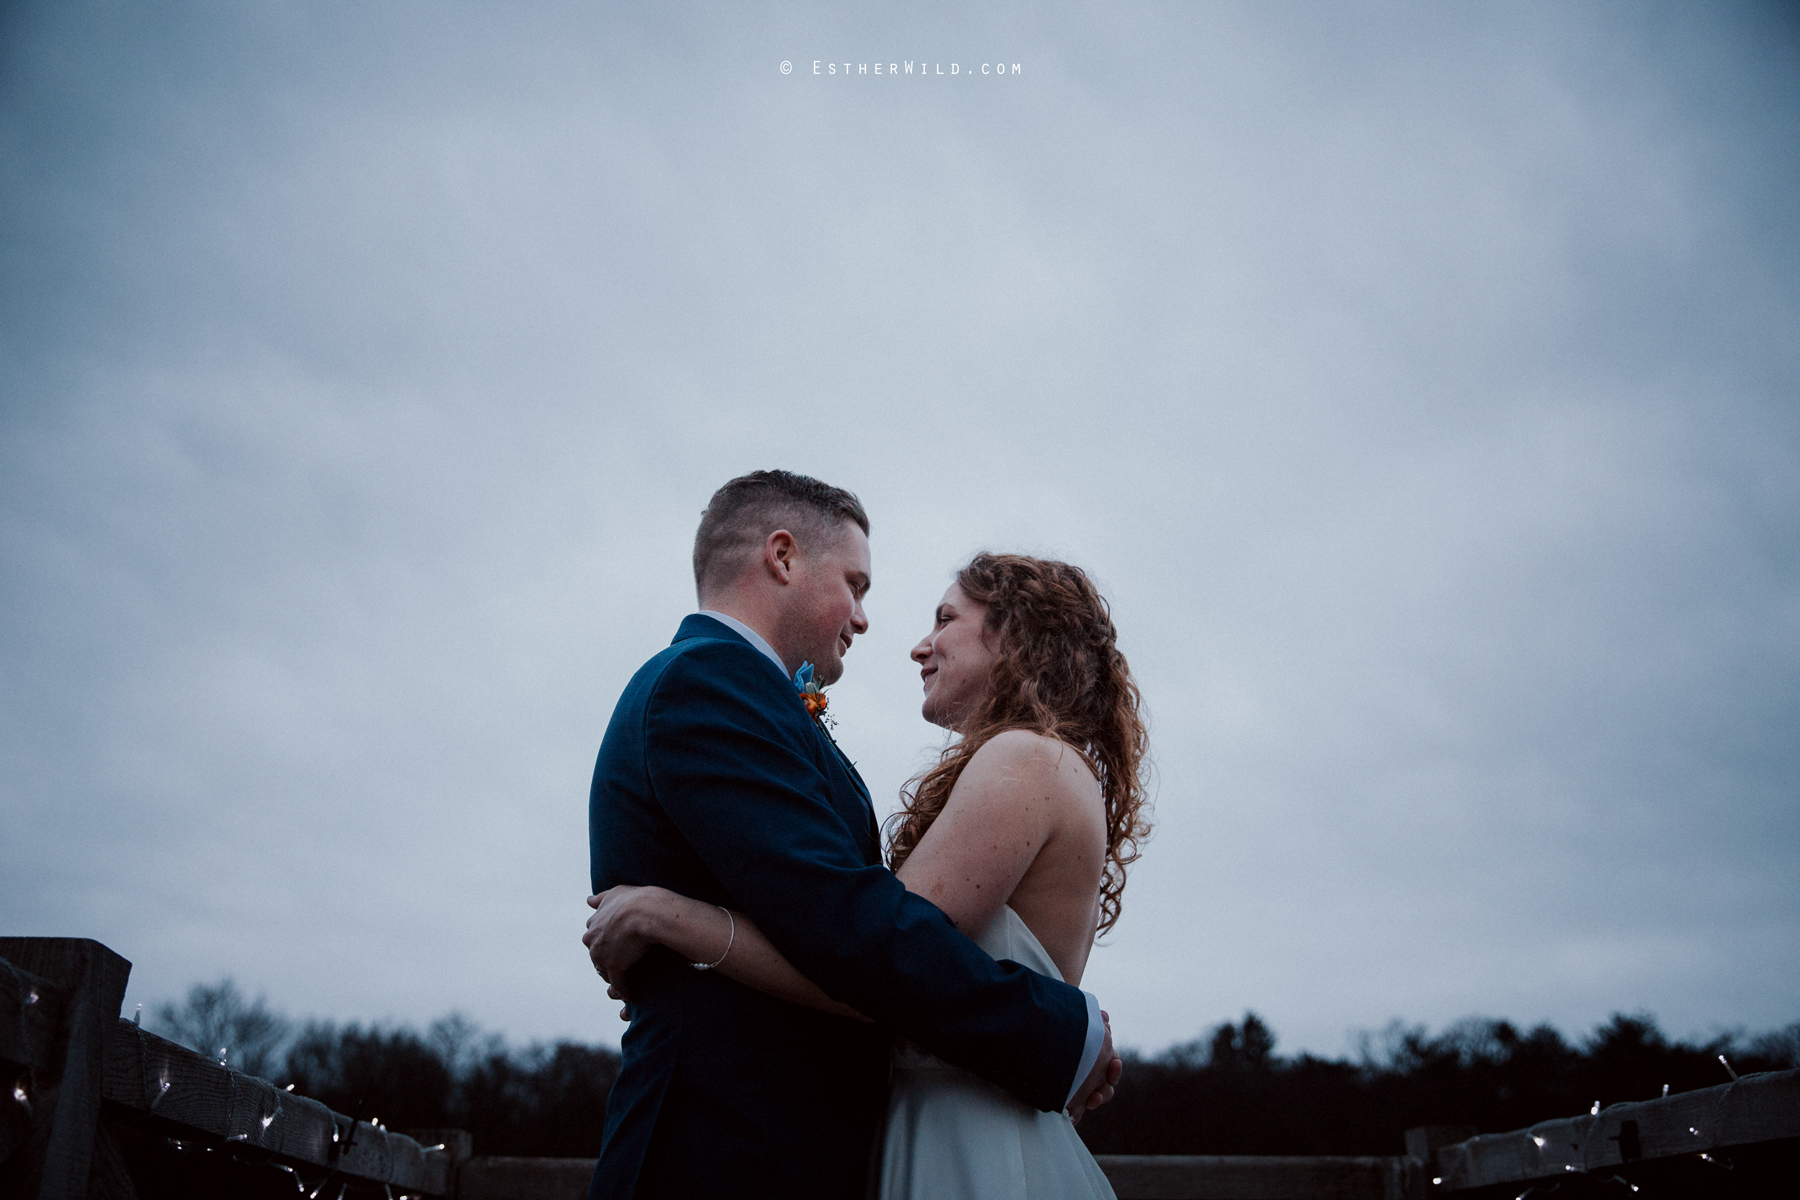 The_BoatHouse_Wedding_Venue_Ormesby_Norfolk_Broads_Boat_Wedding_Photography_Esther_Wild_Photographer_IMG_3390.jpg